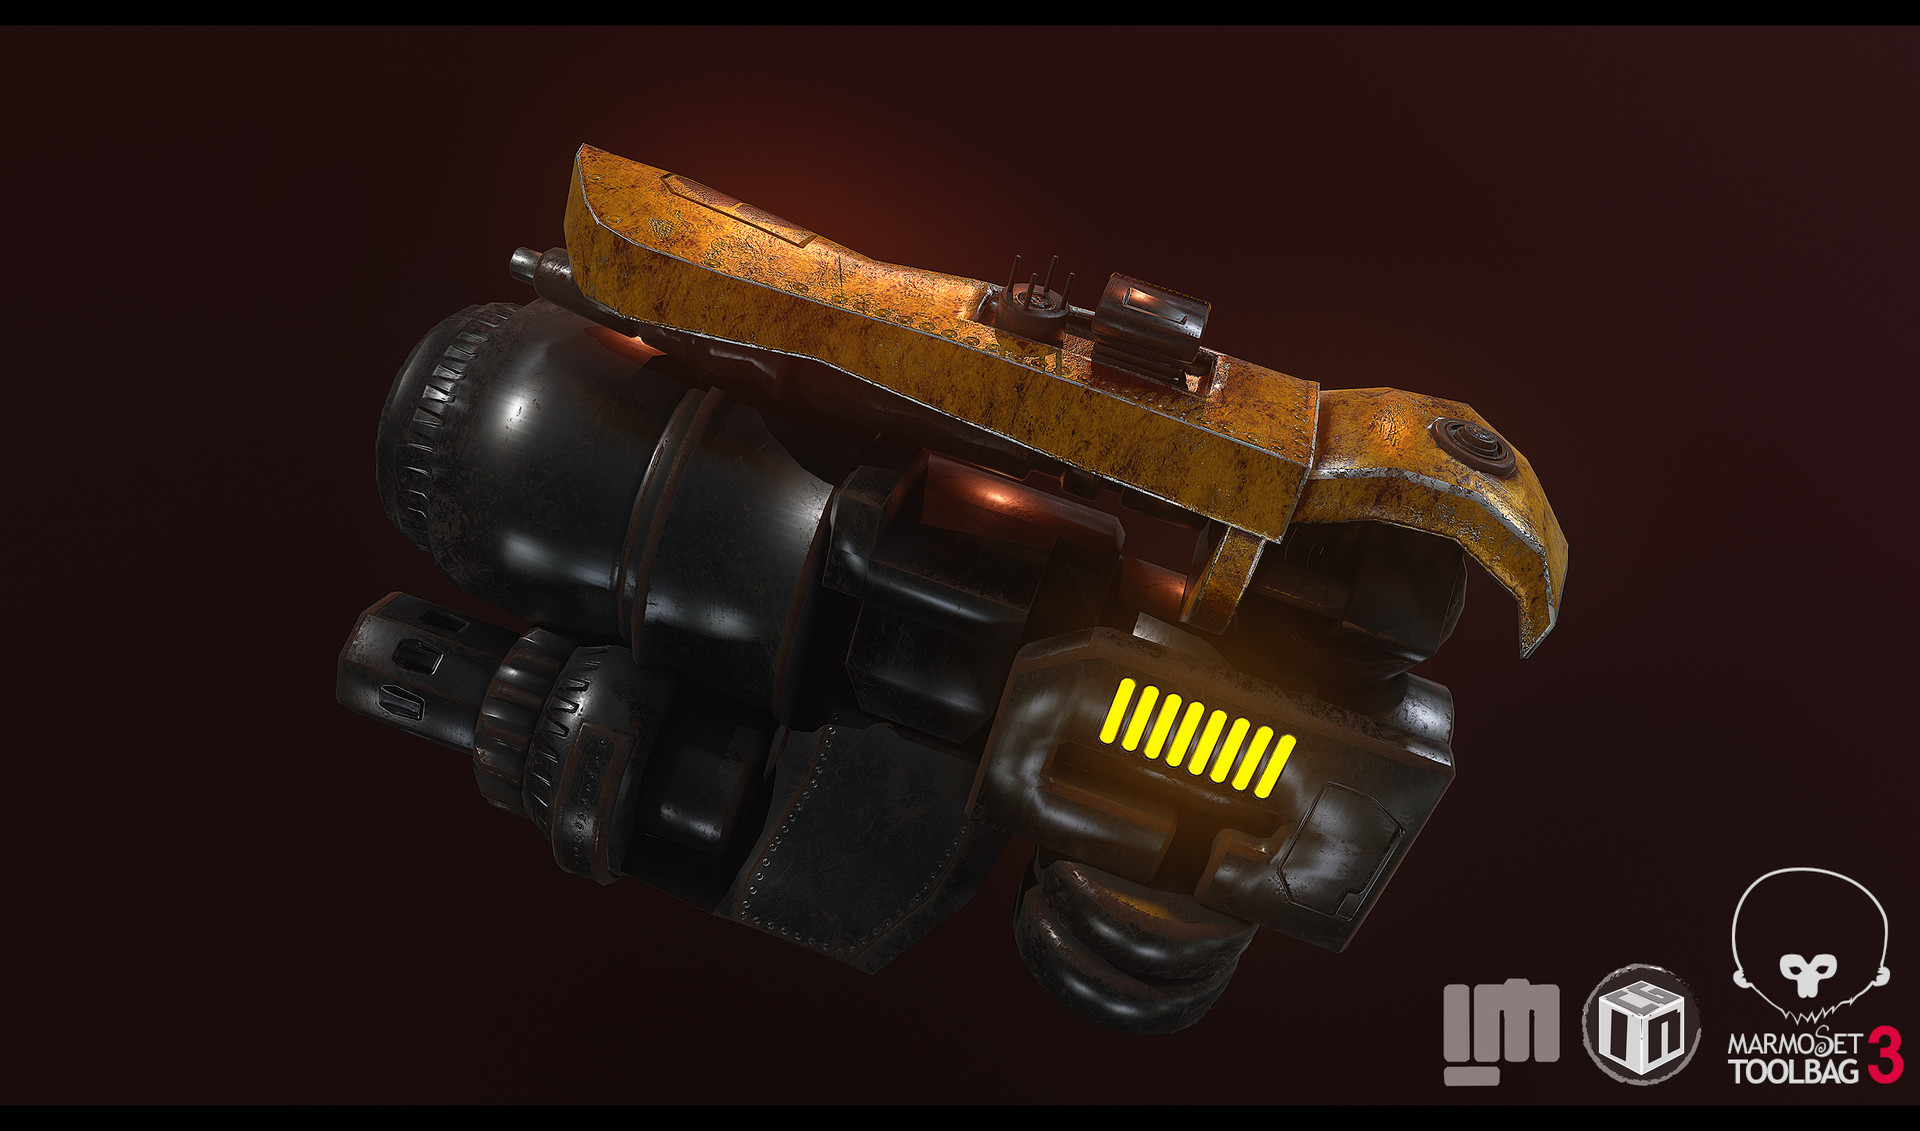 Matias toloza isolatednerdcg weapon 4